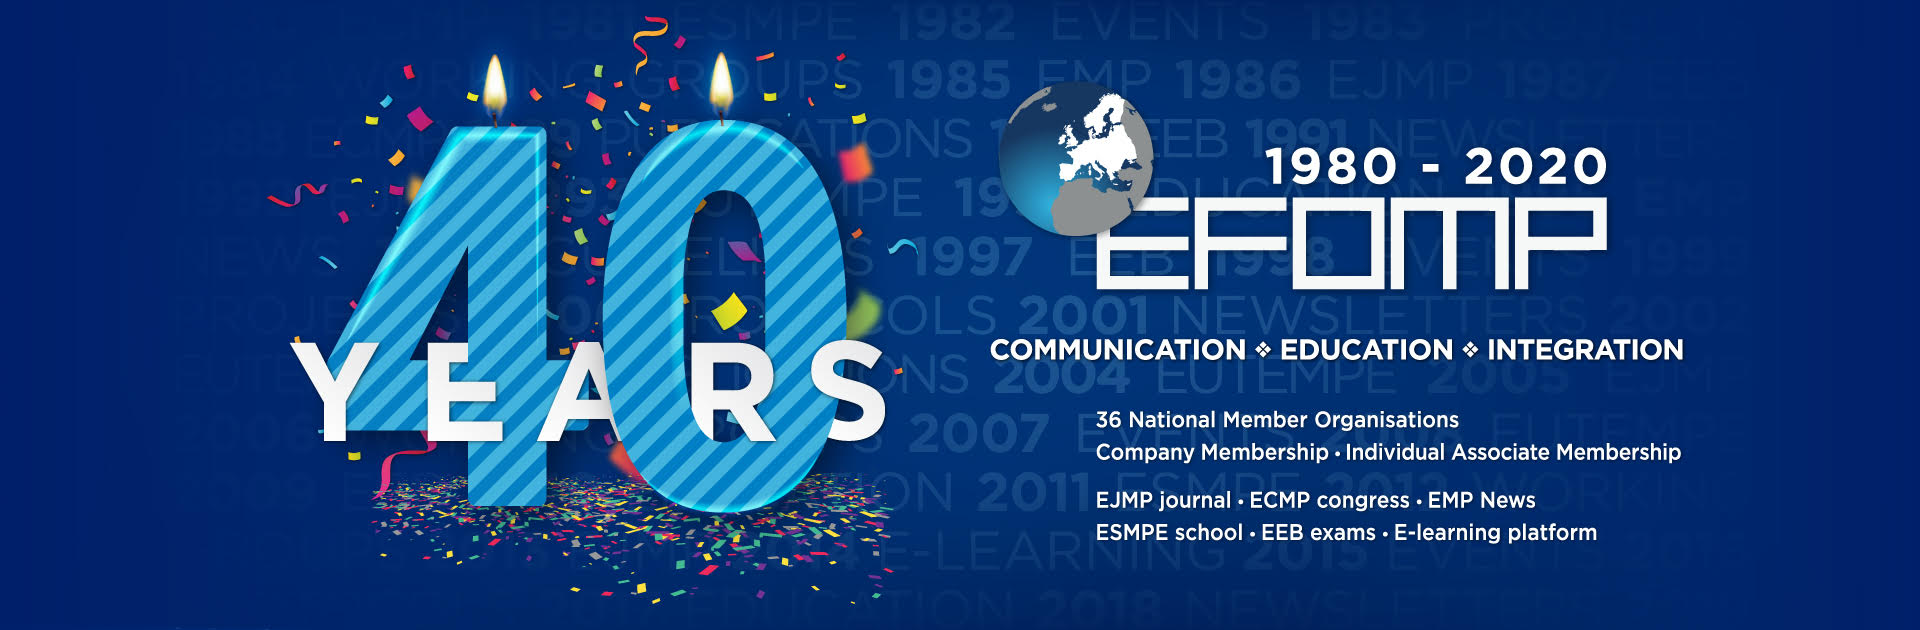 Celebrating the 40th Anniversary of EFOMP